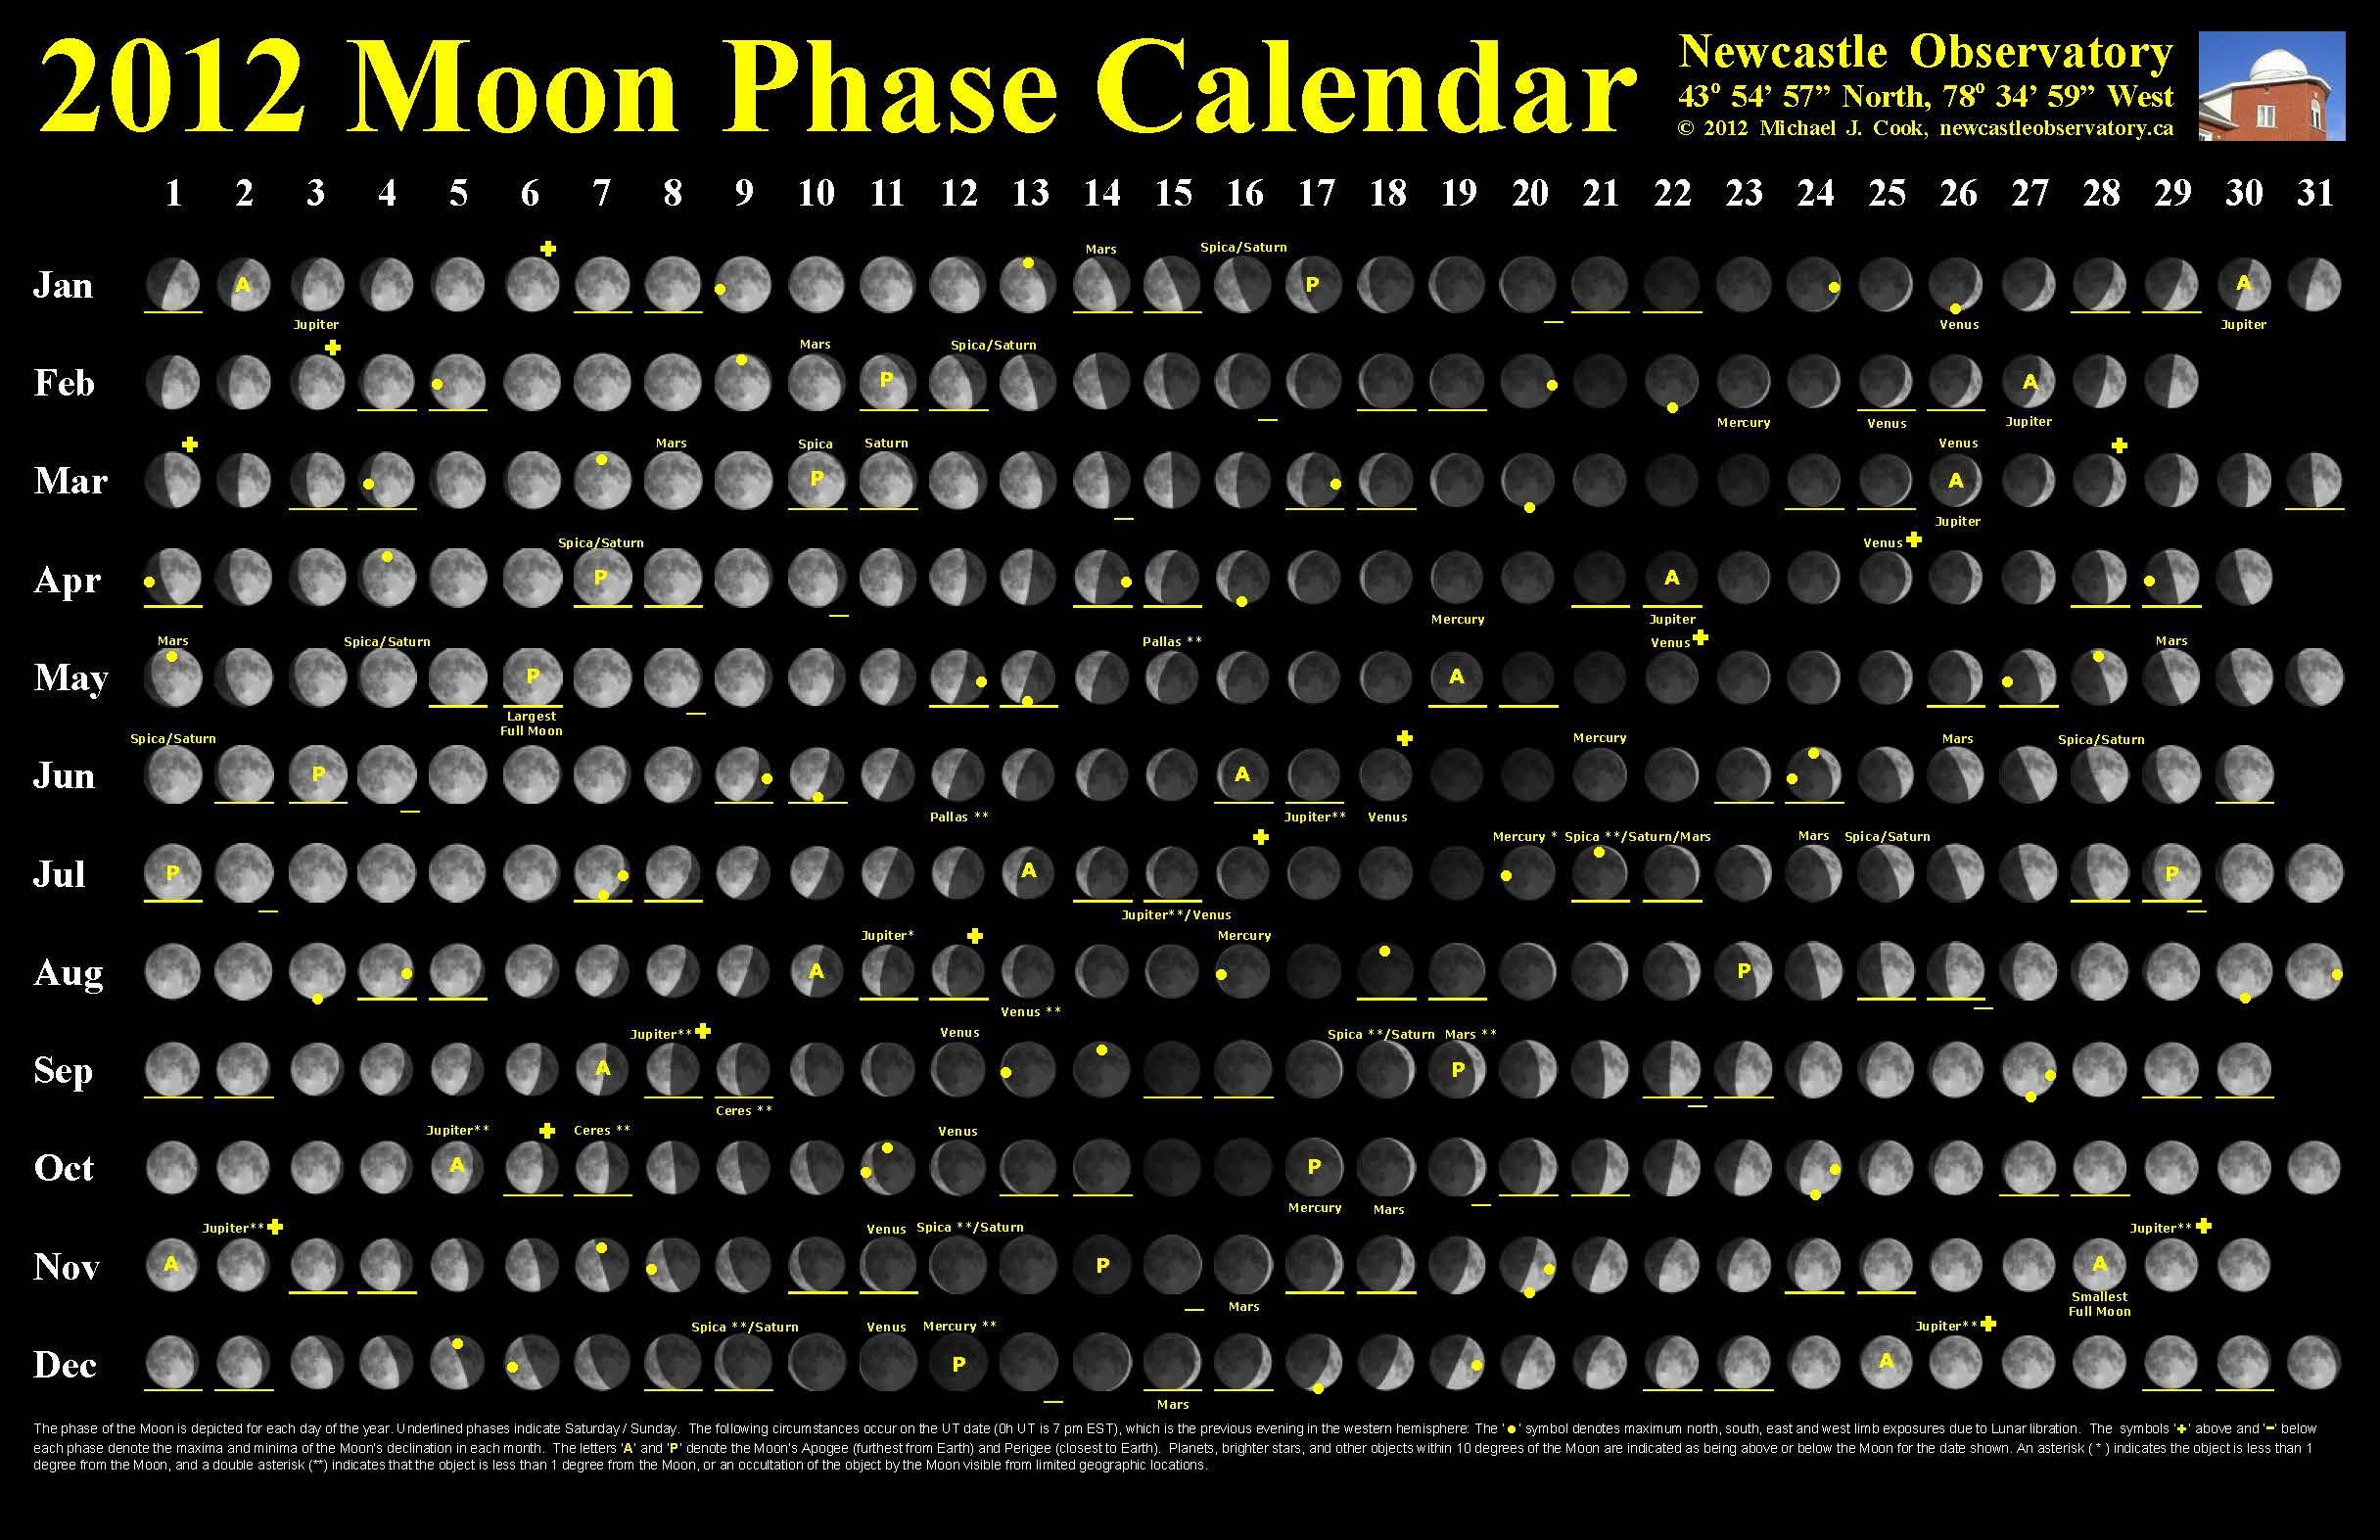 2012 Moon Phase Calendar - UPDATE | Newcastle Observatory